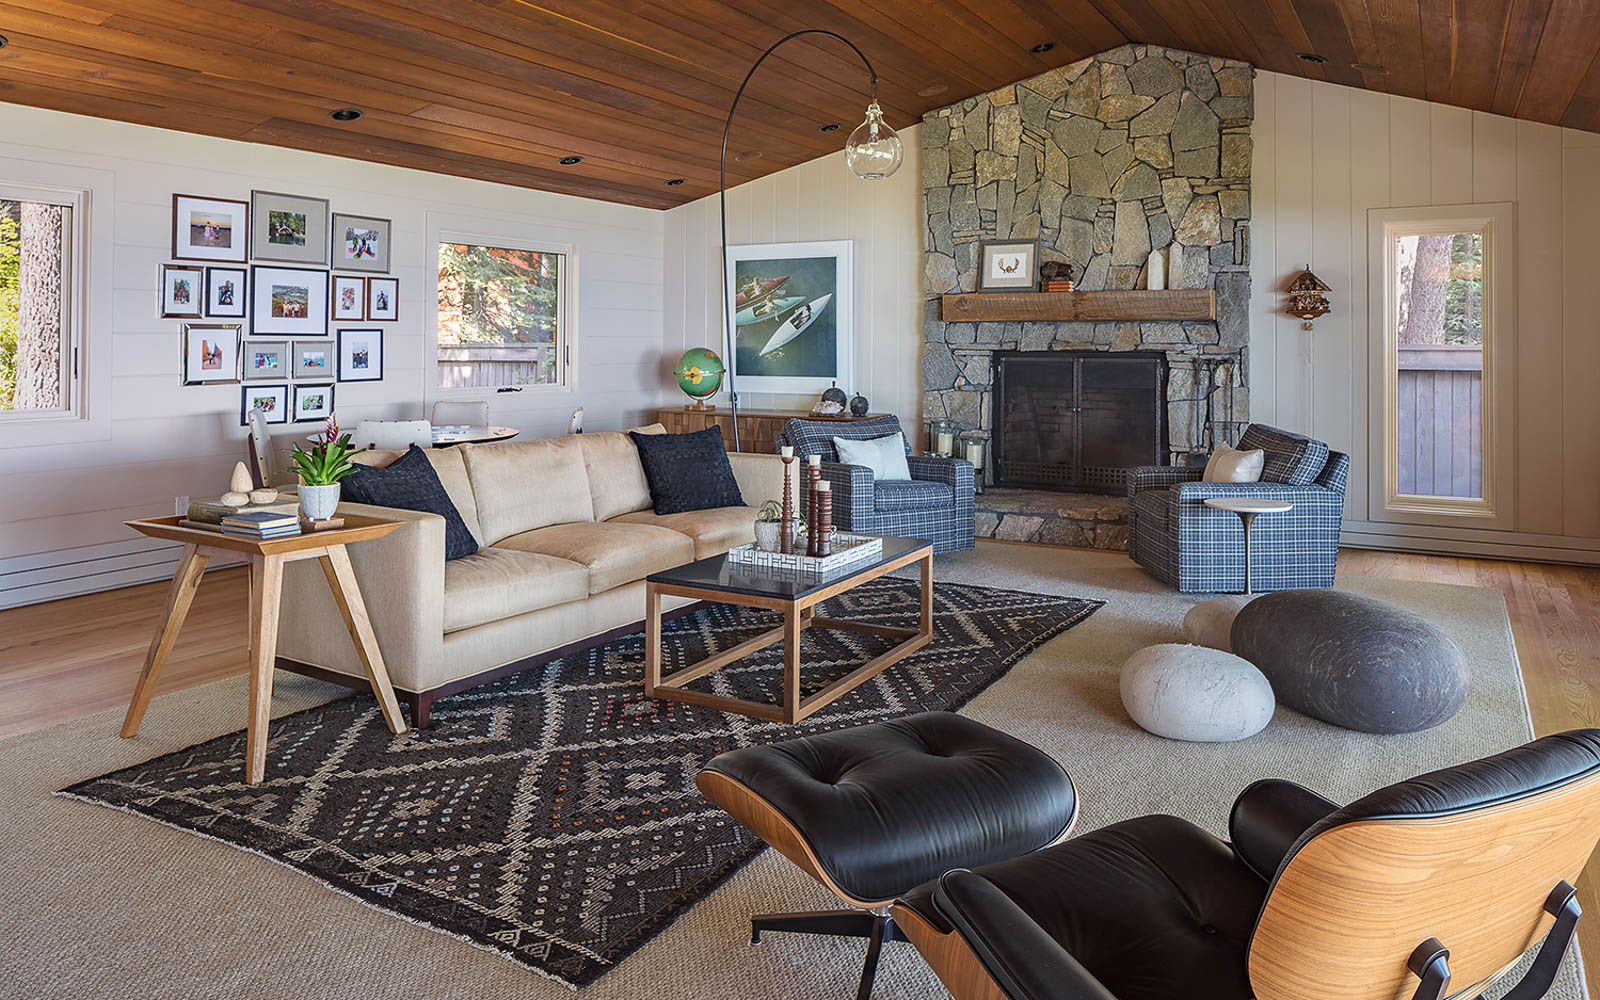 A living room with a beige sofa, stone fireplace, and stylish decor.